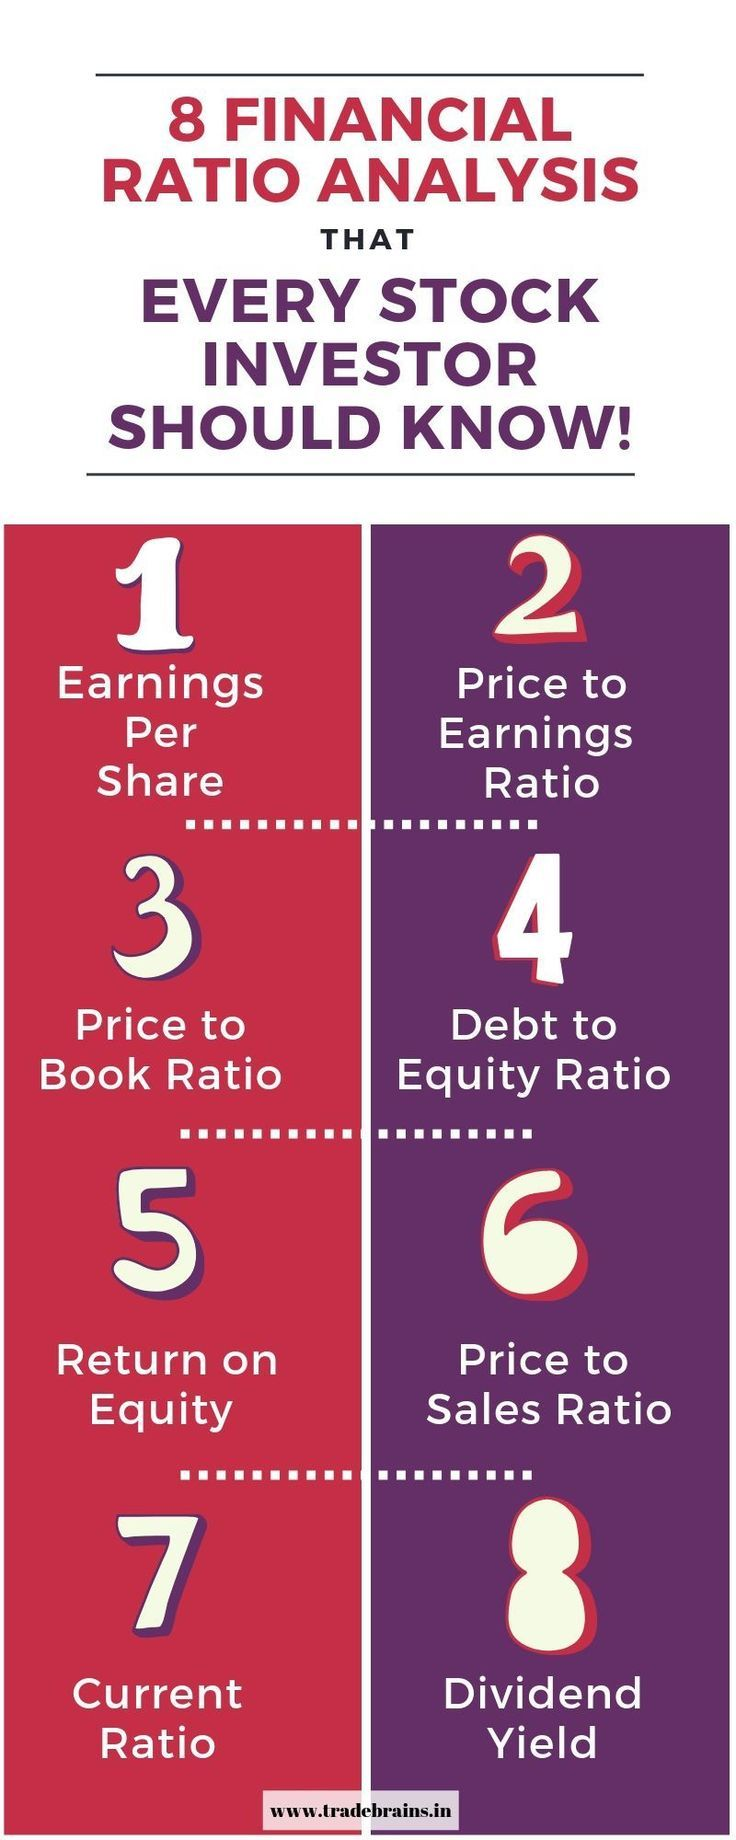 8 Financial Ratio Analysis That Every Stock Investor Should Know Financial Ratio Cash Flow Statement Financial Analysis